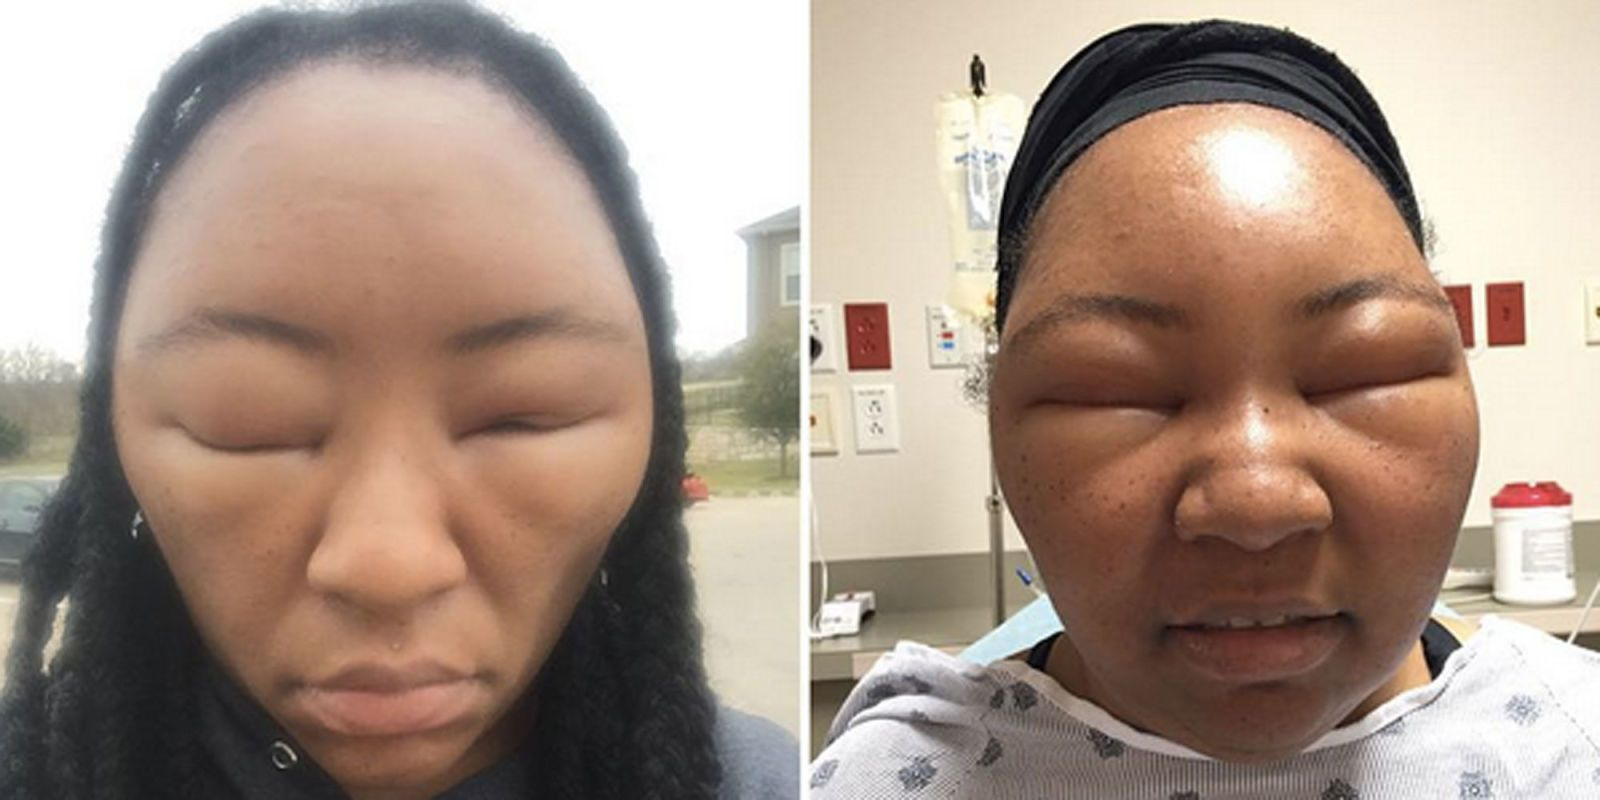 Health Vlogger Shares Photos After Scary Allergic Reaction To Henna Hair Dye When Hair Dye Goes Wrong Henna Hair Dyes Hair Dye Allergy